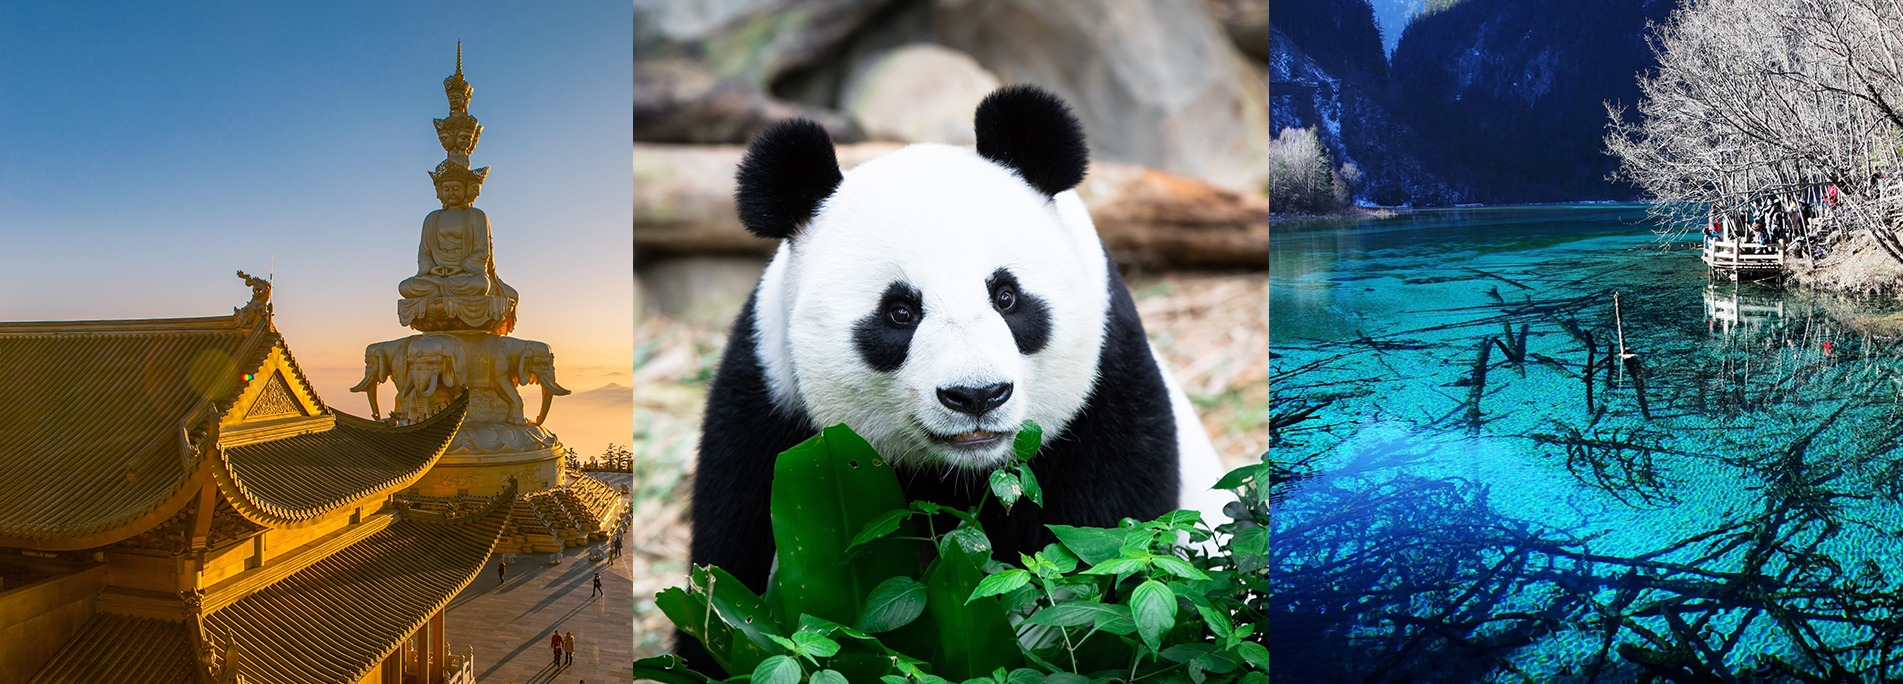 You can visit Sichuan by joining various group tours going to Jiuzhai Valley, Panda Breeding Center, Leshan Giant Buddha, etc.